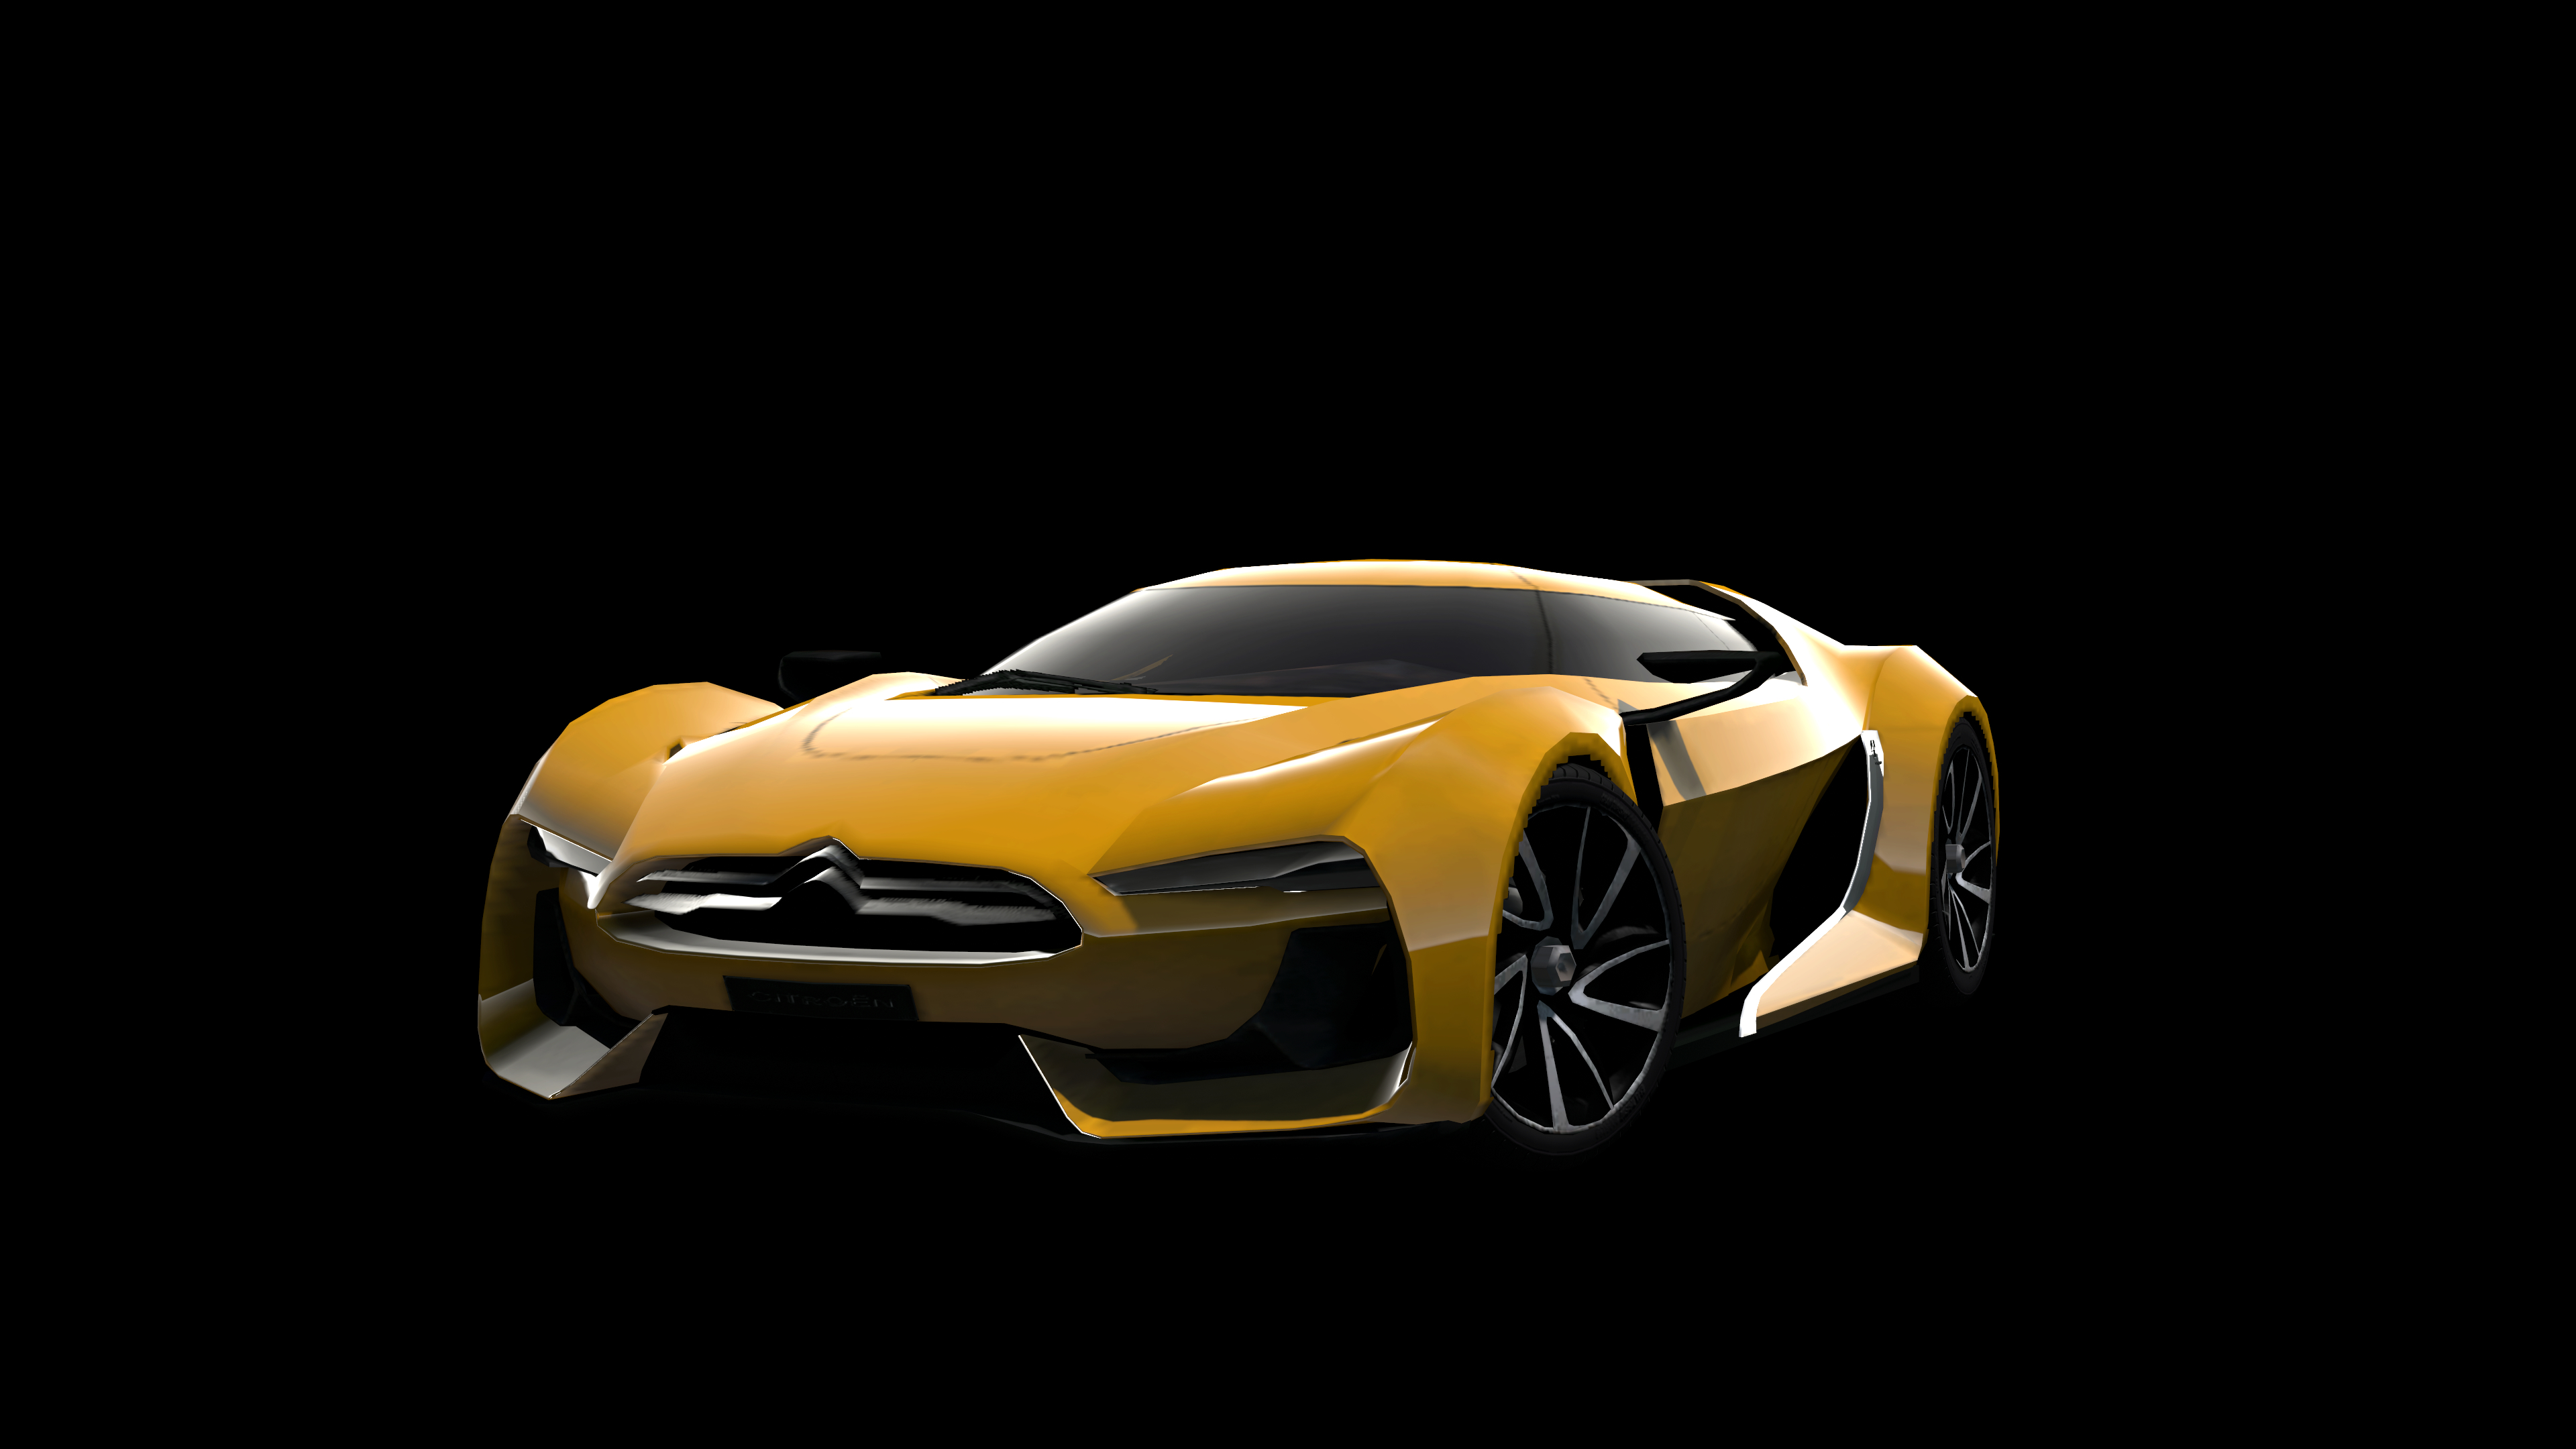 cars cgi GT by HD Wallpaper